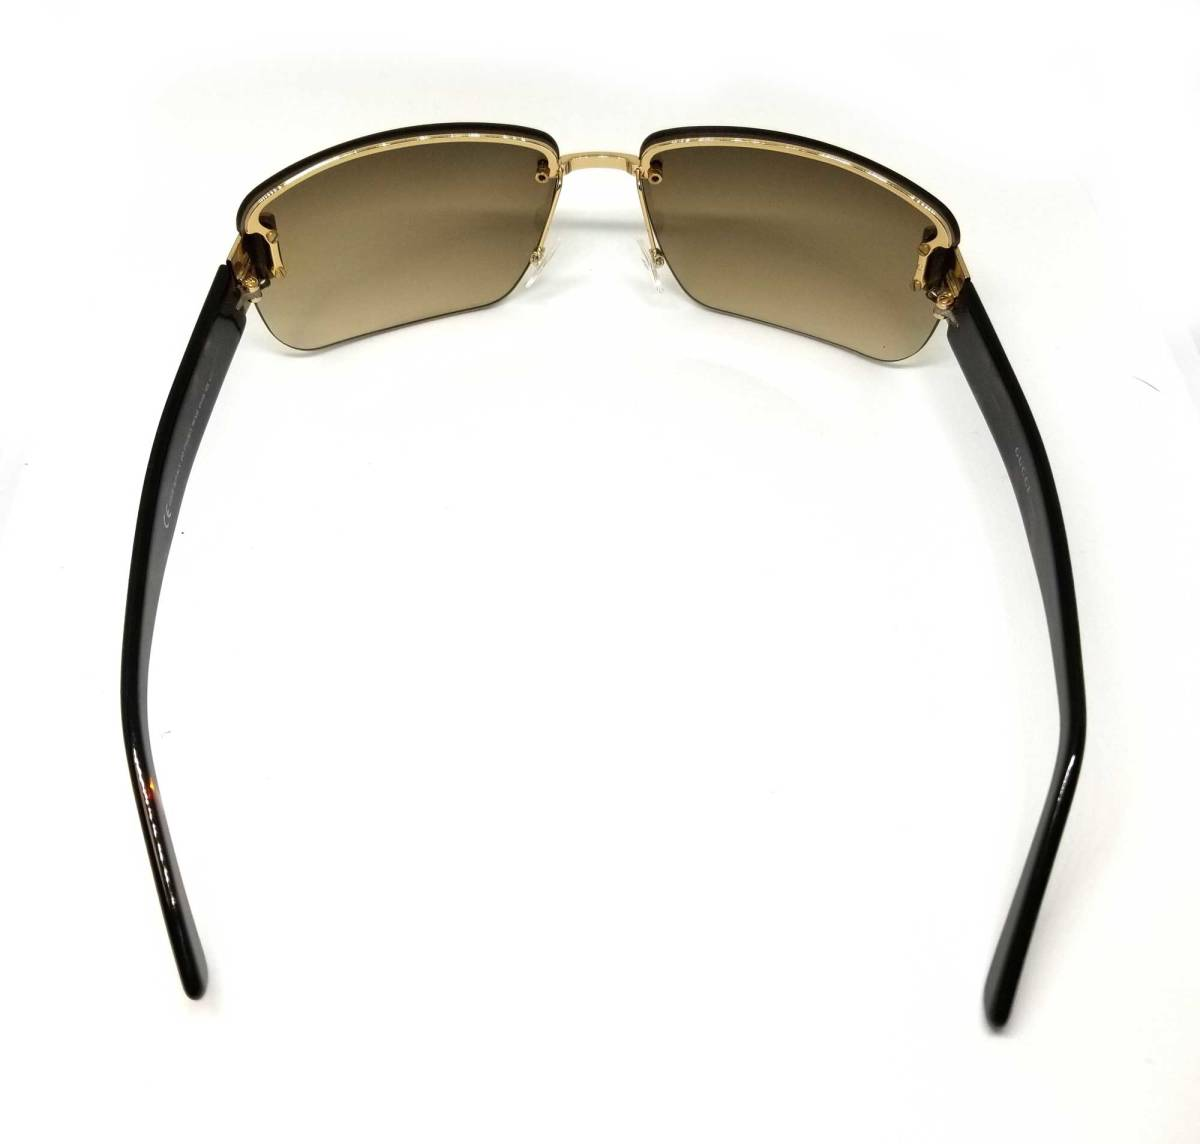 5868026c57d Gucci sunglasses GG brown brown Lady s GG pattern beauty product GUCCI  GG1798 gold icon